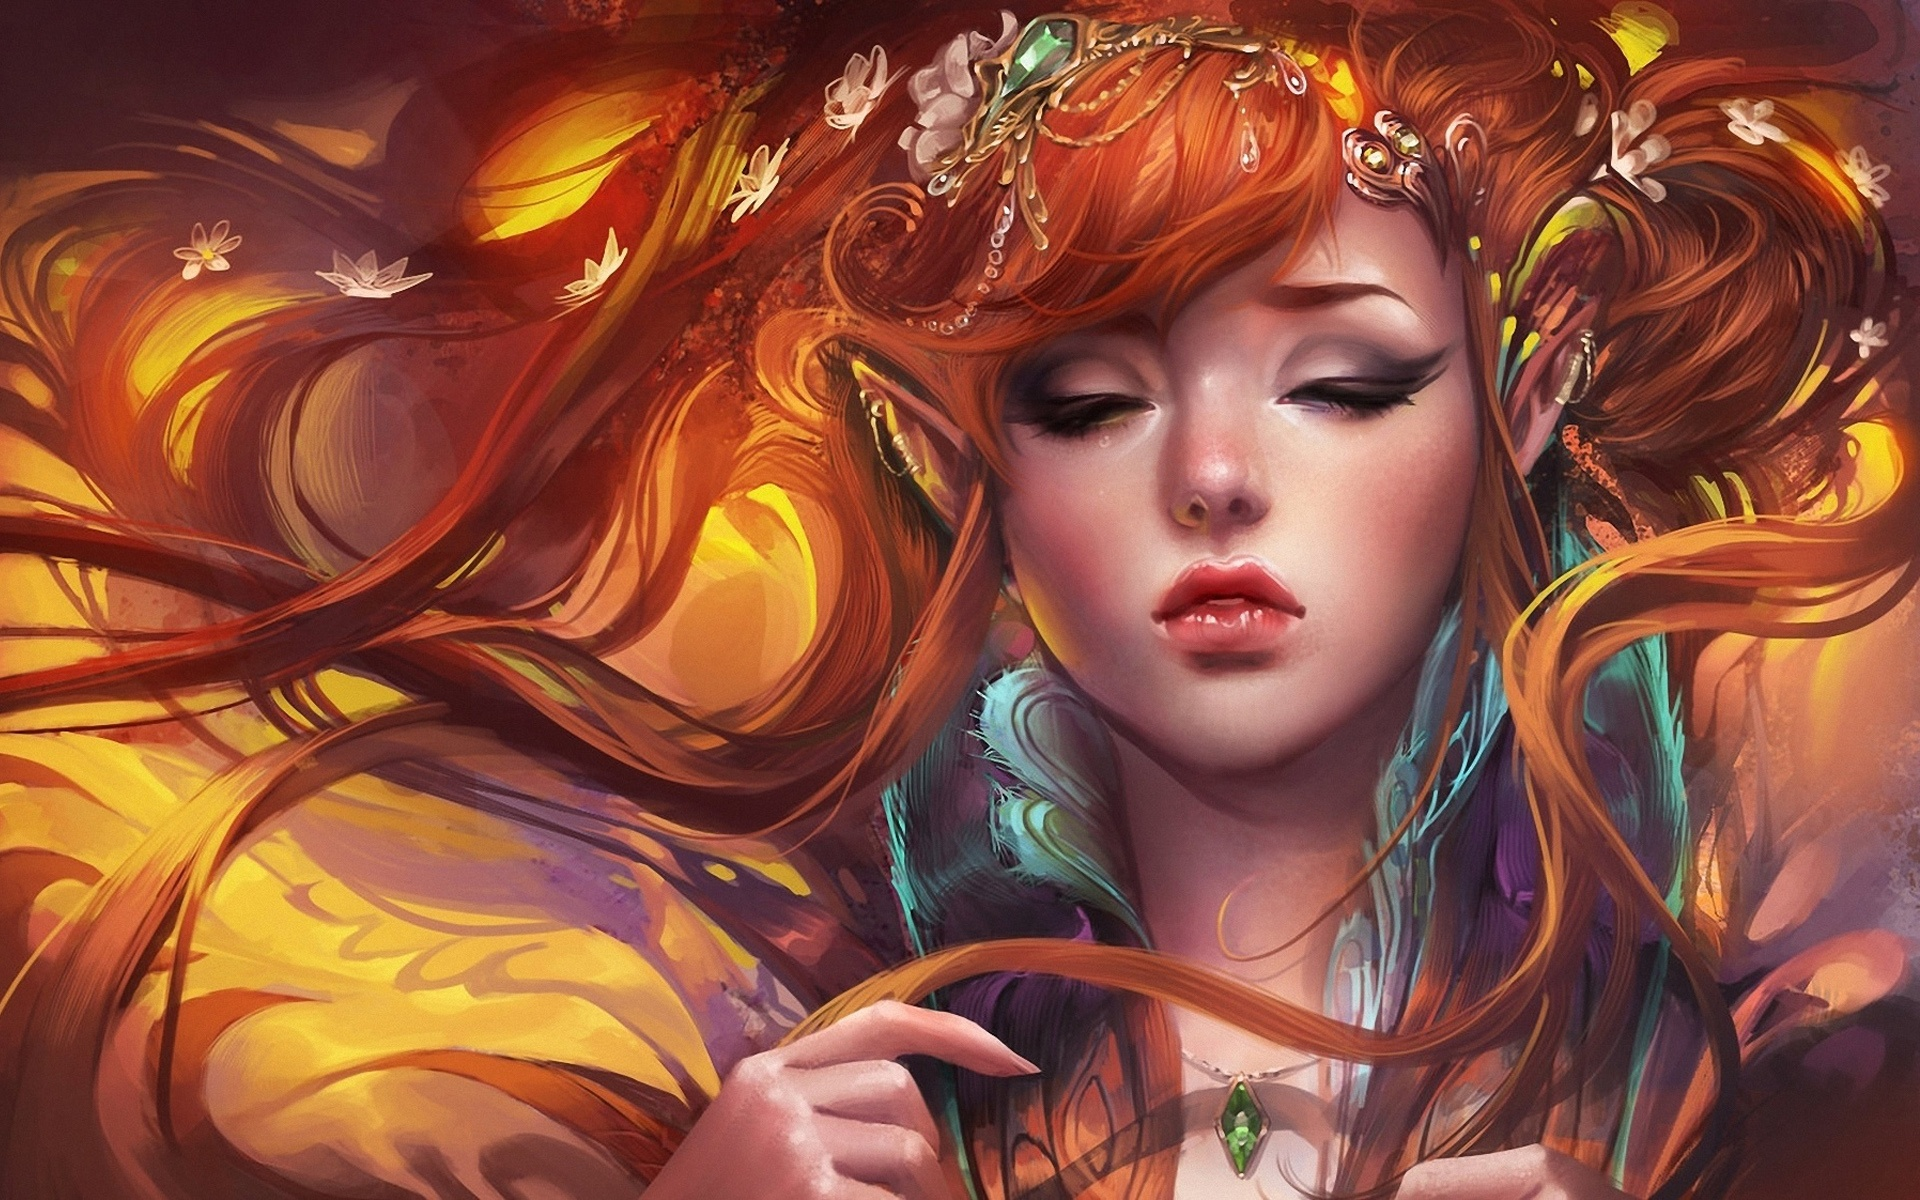 Fantasy - Elf  Long Hair Pointed Ears Red Hair Fantasy Woman Girl Wallpaper